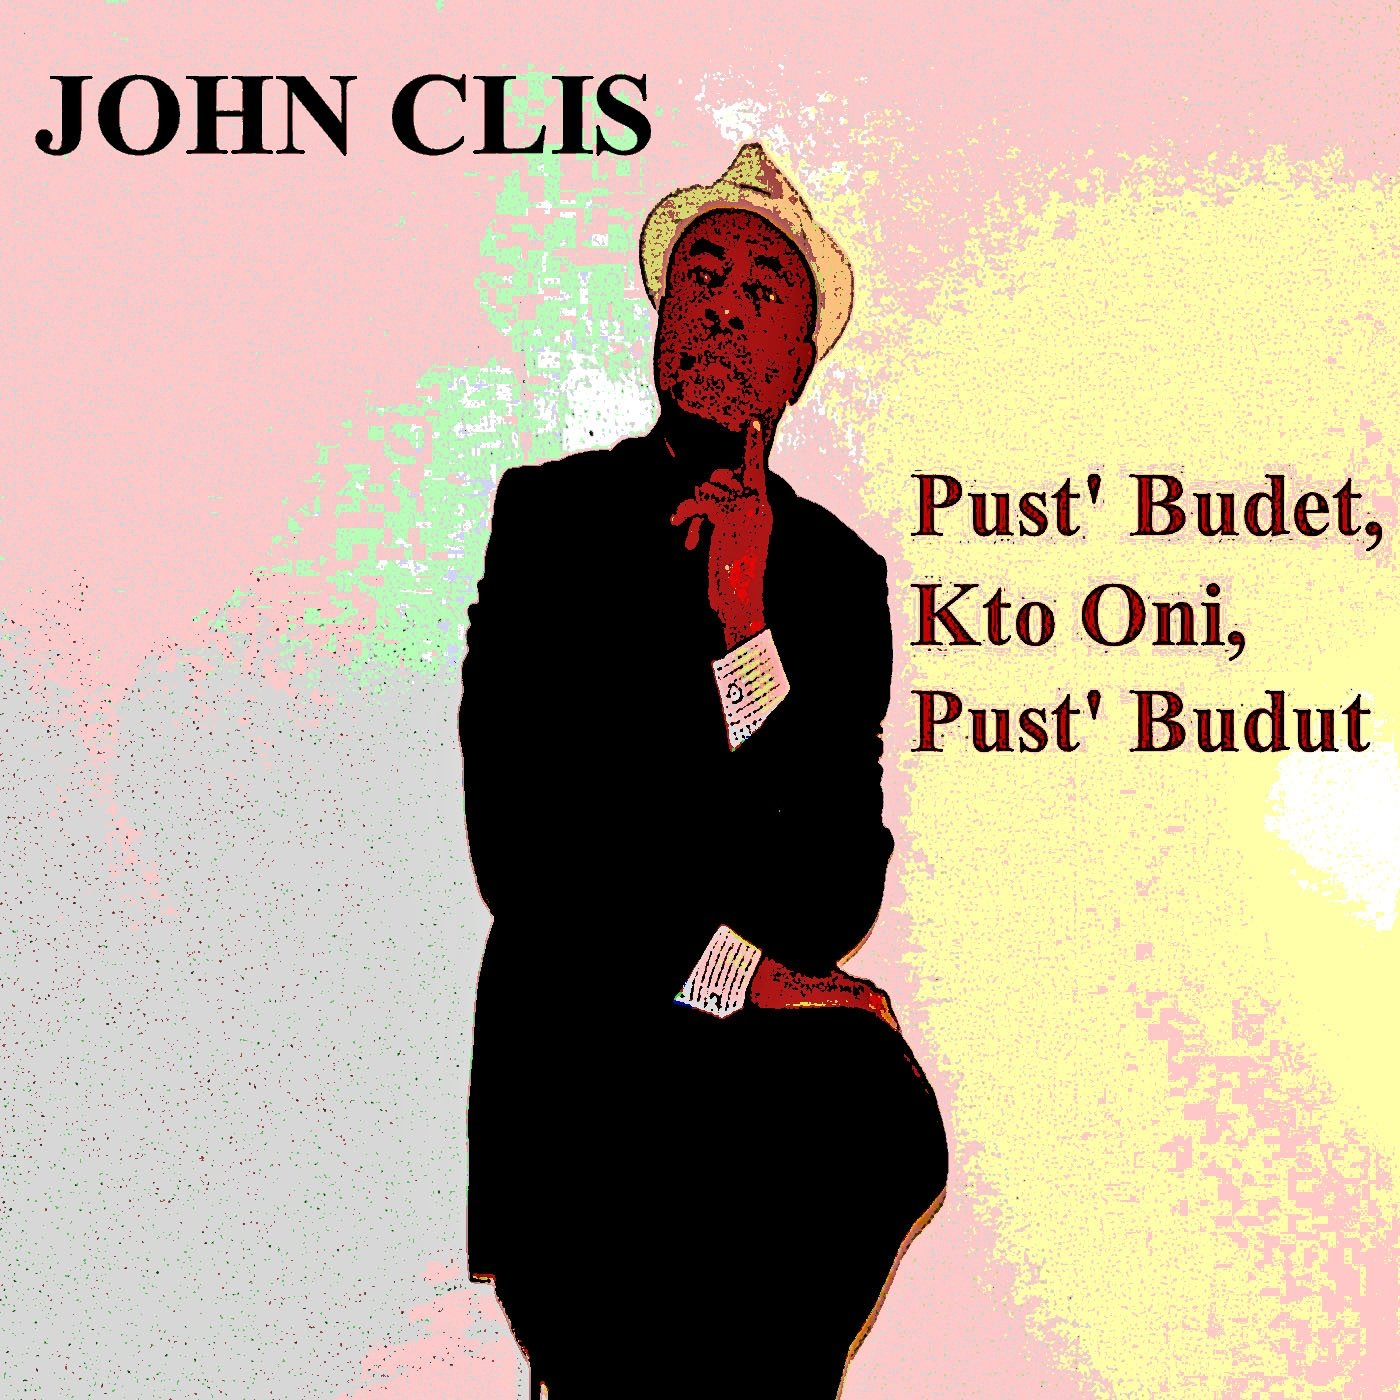 https://0201.nccdn.net/1_2/000/000/144/534/John-Clis---Pust--Budet---Photo-1400x1400.jpg